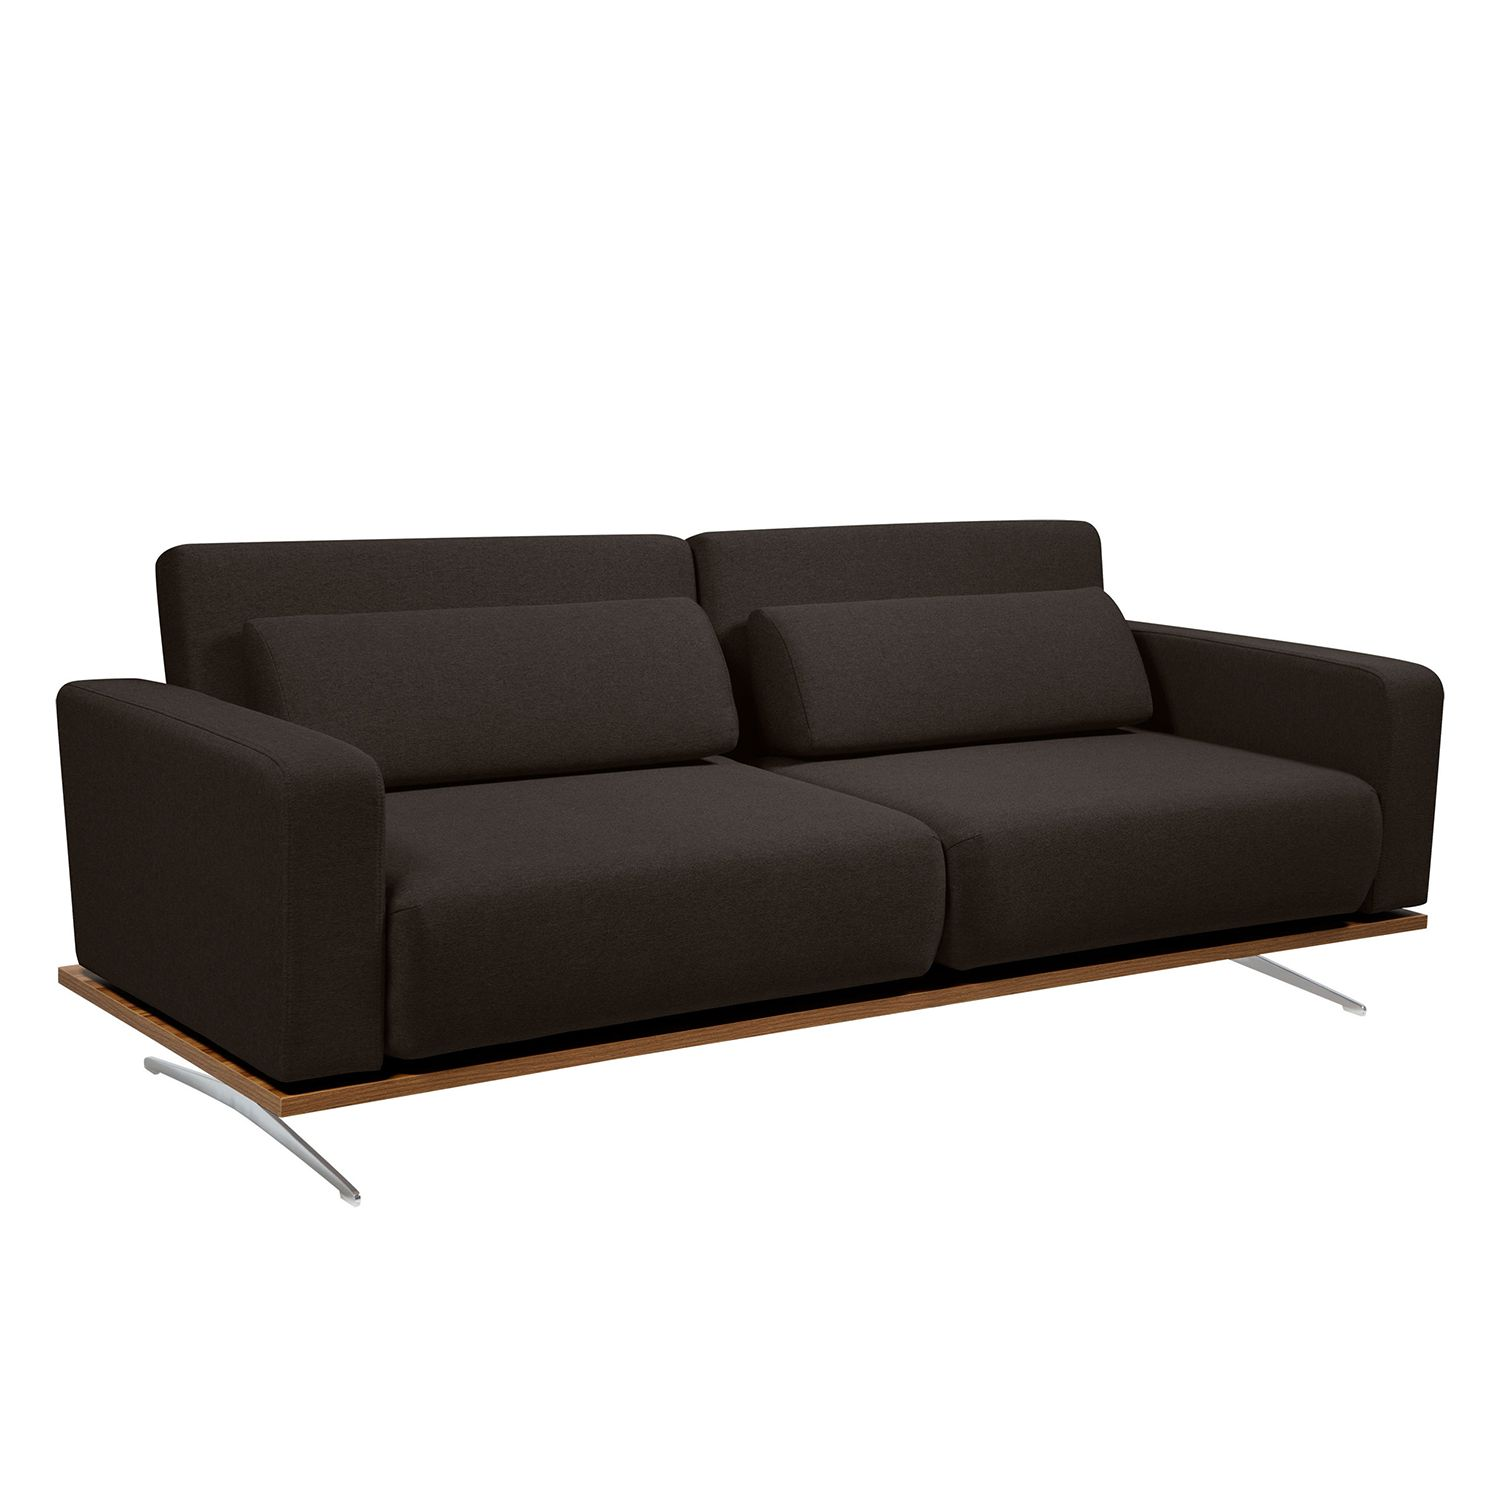 schlafsofa copperfield ii webstoff stoff zahira braun g nstig kaufen. Black Bedroom Furniture Sets. Home Design Ideas